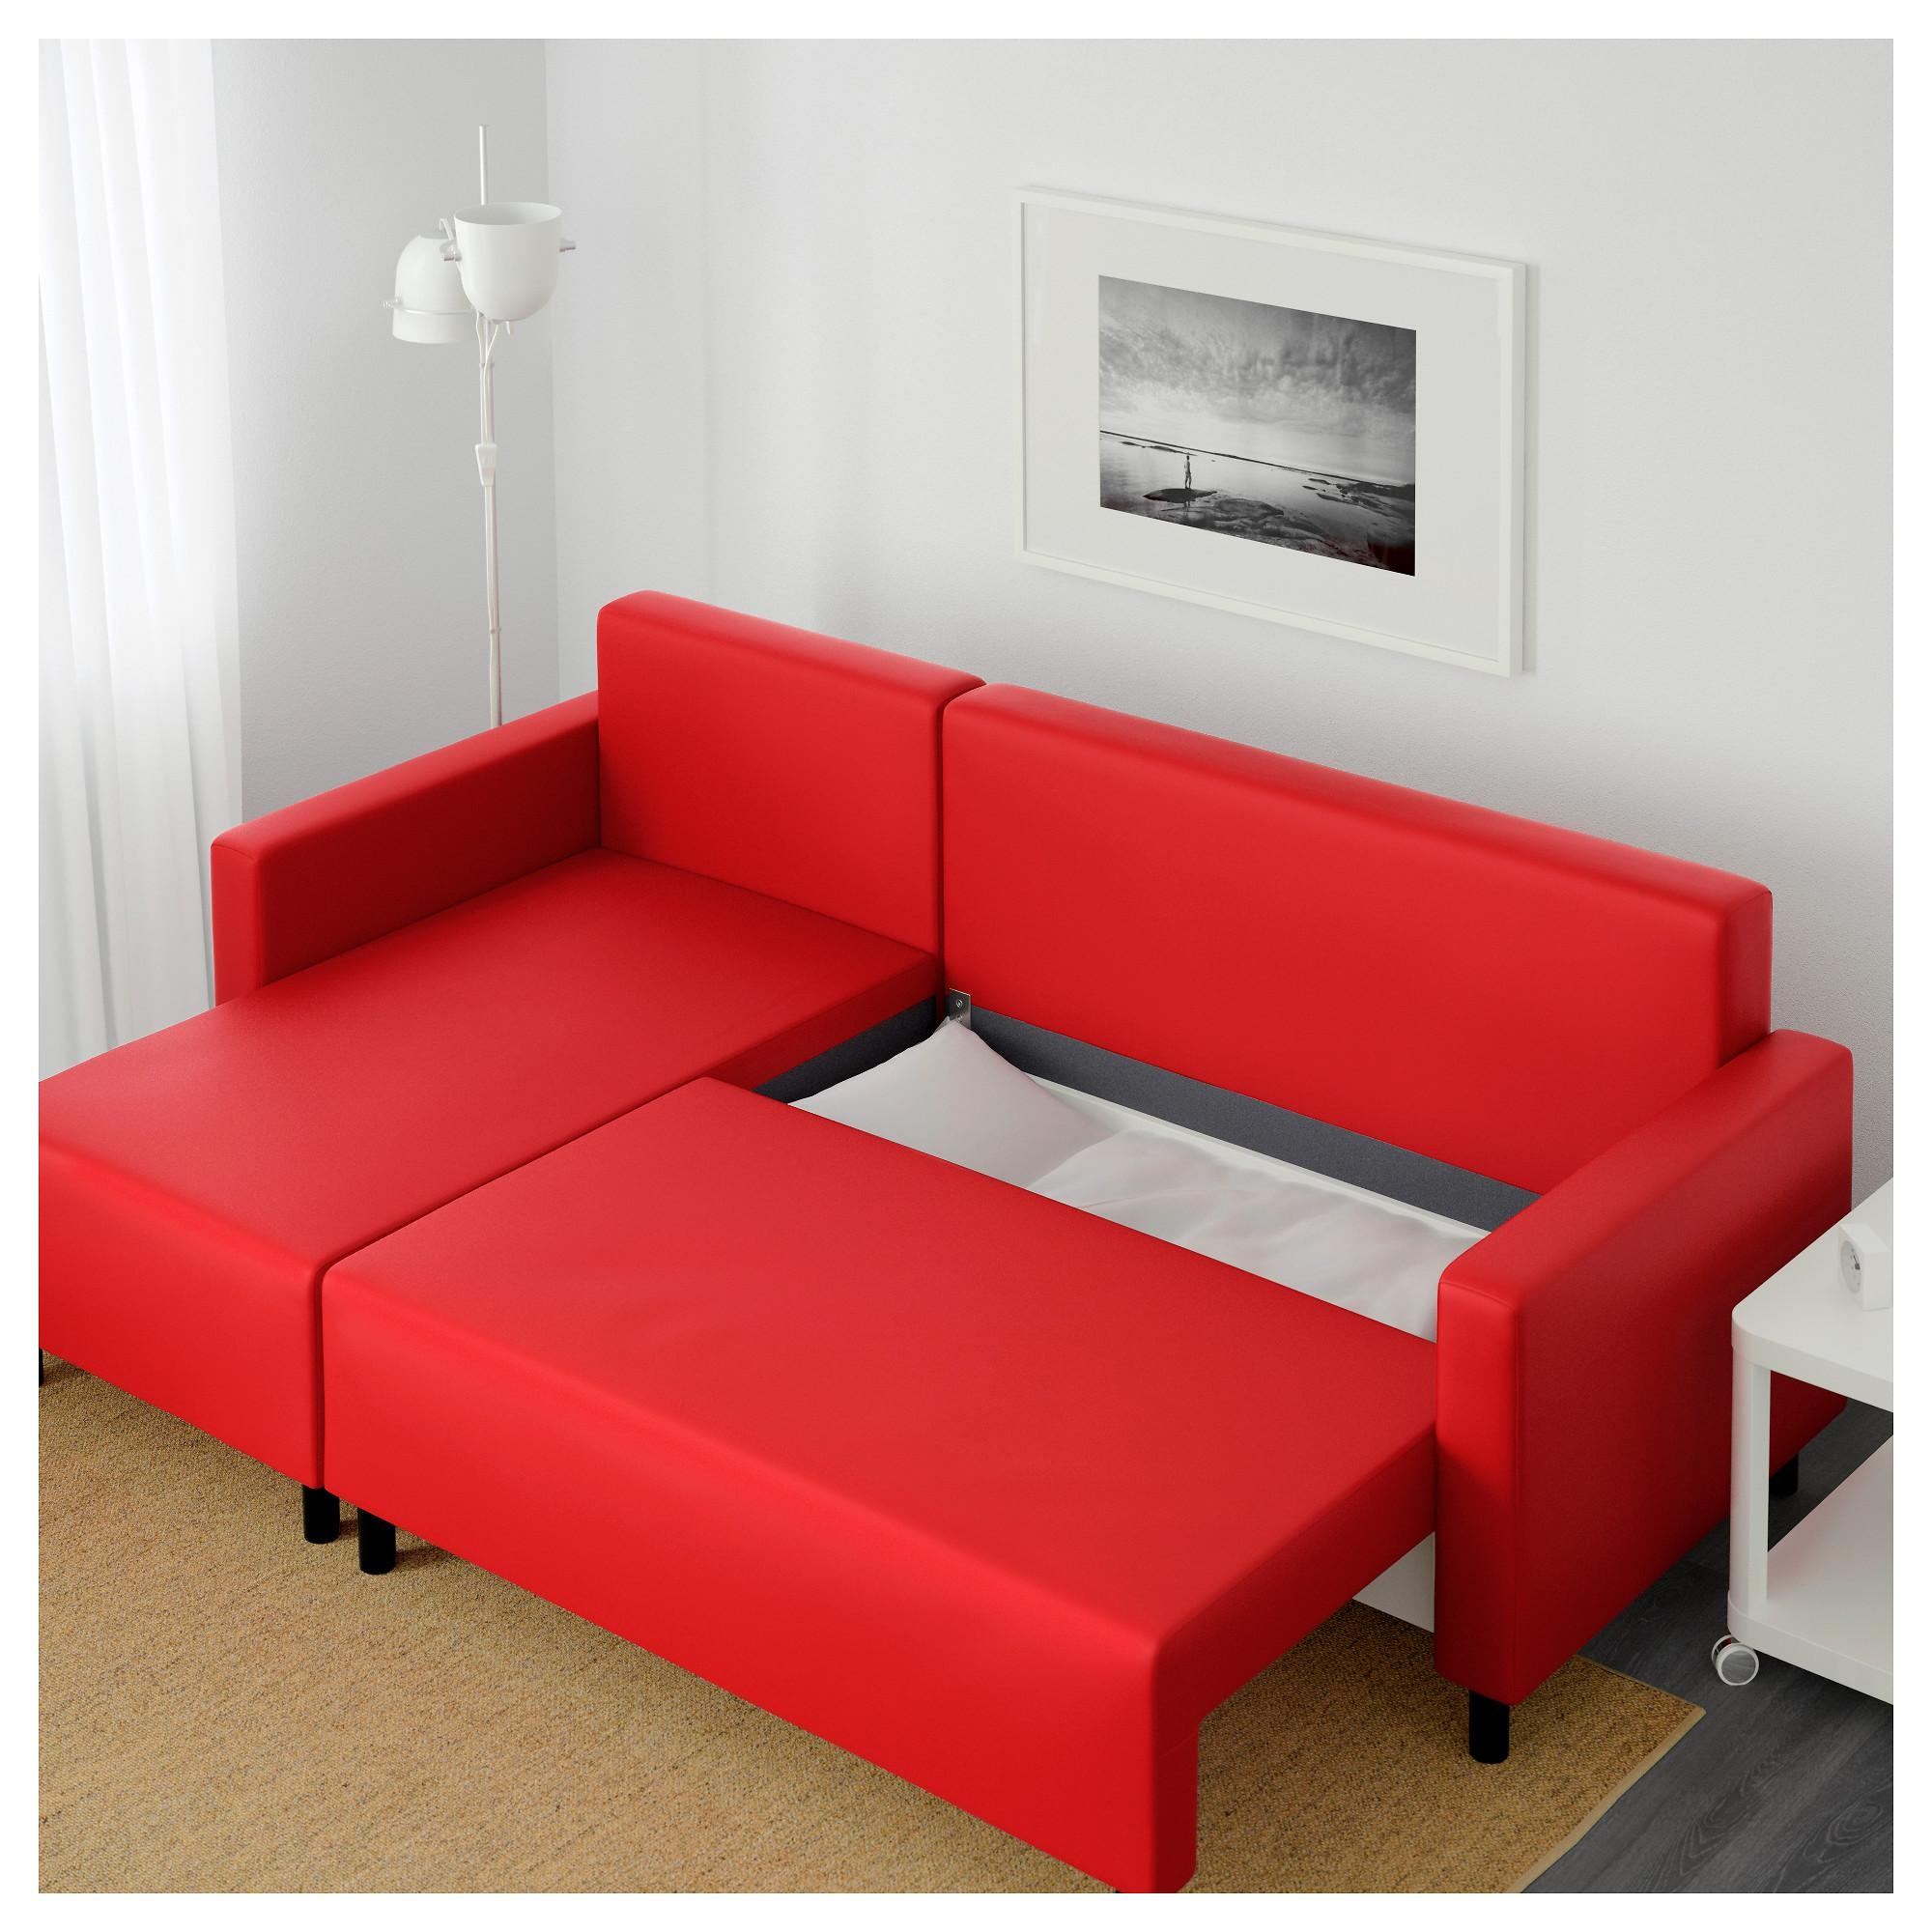 sofa beds cheap ikea types of couches and sofas 20 43 choices red ideas